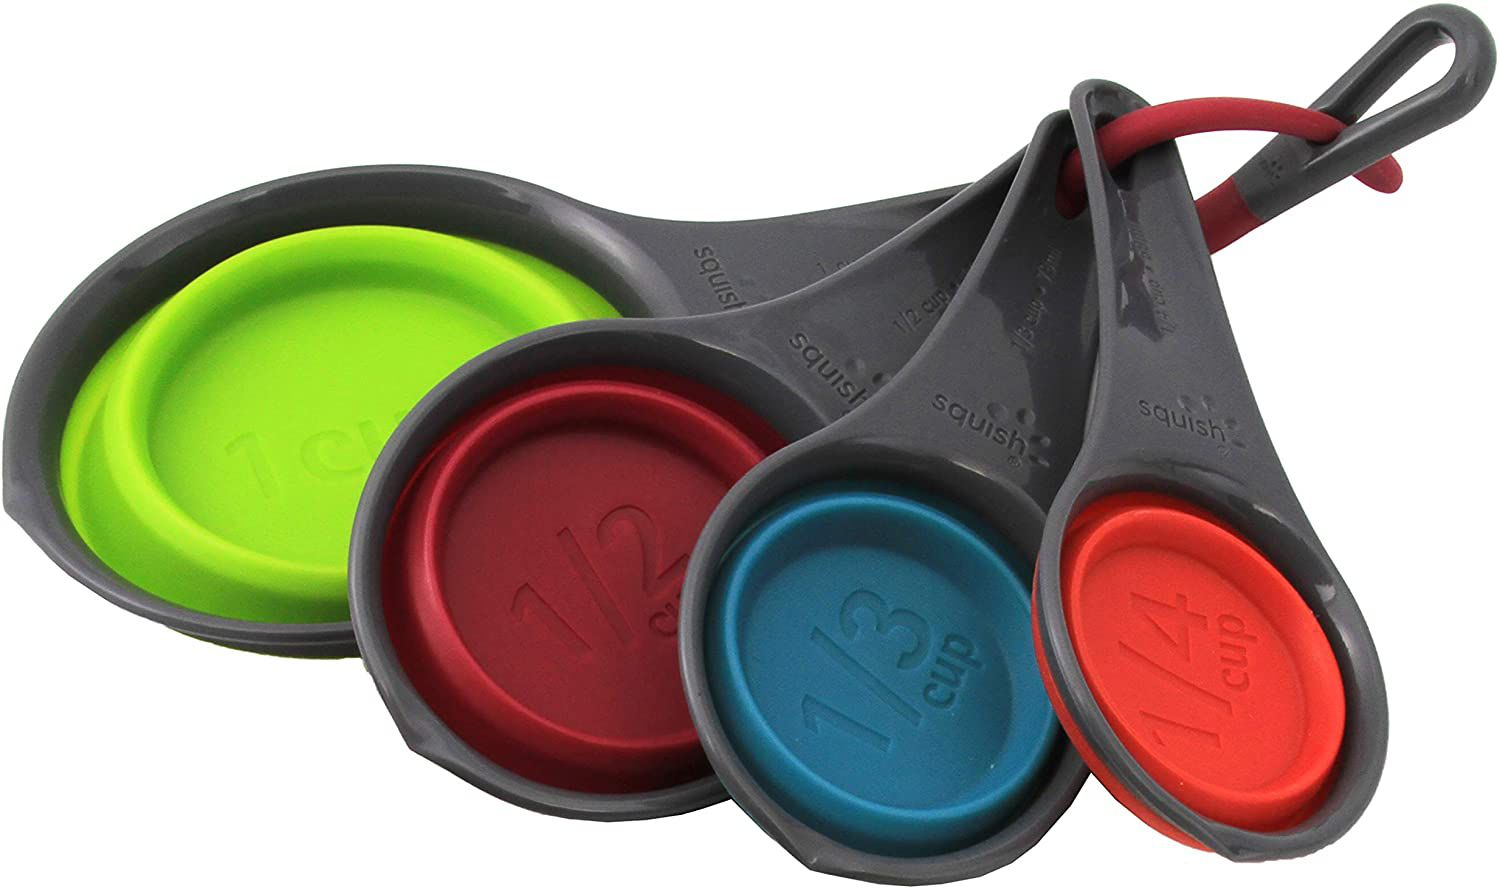 Squish 4-Piece Collapsible Measuring Cup Set